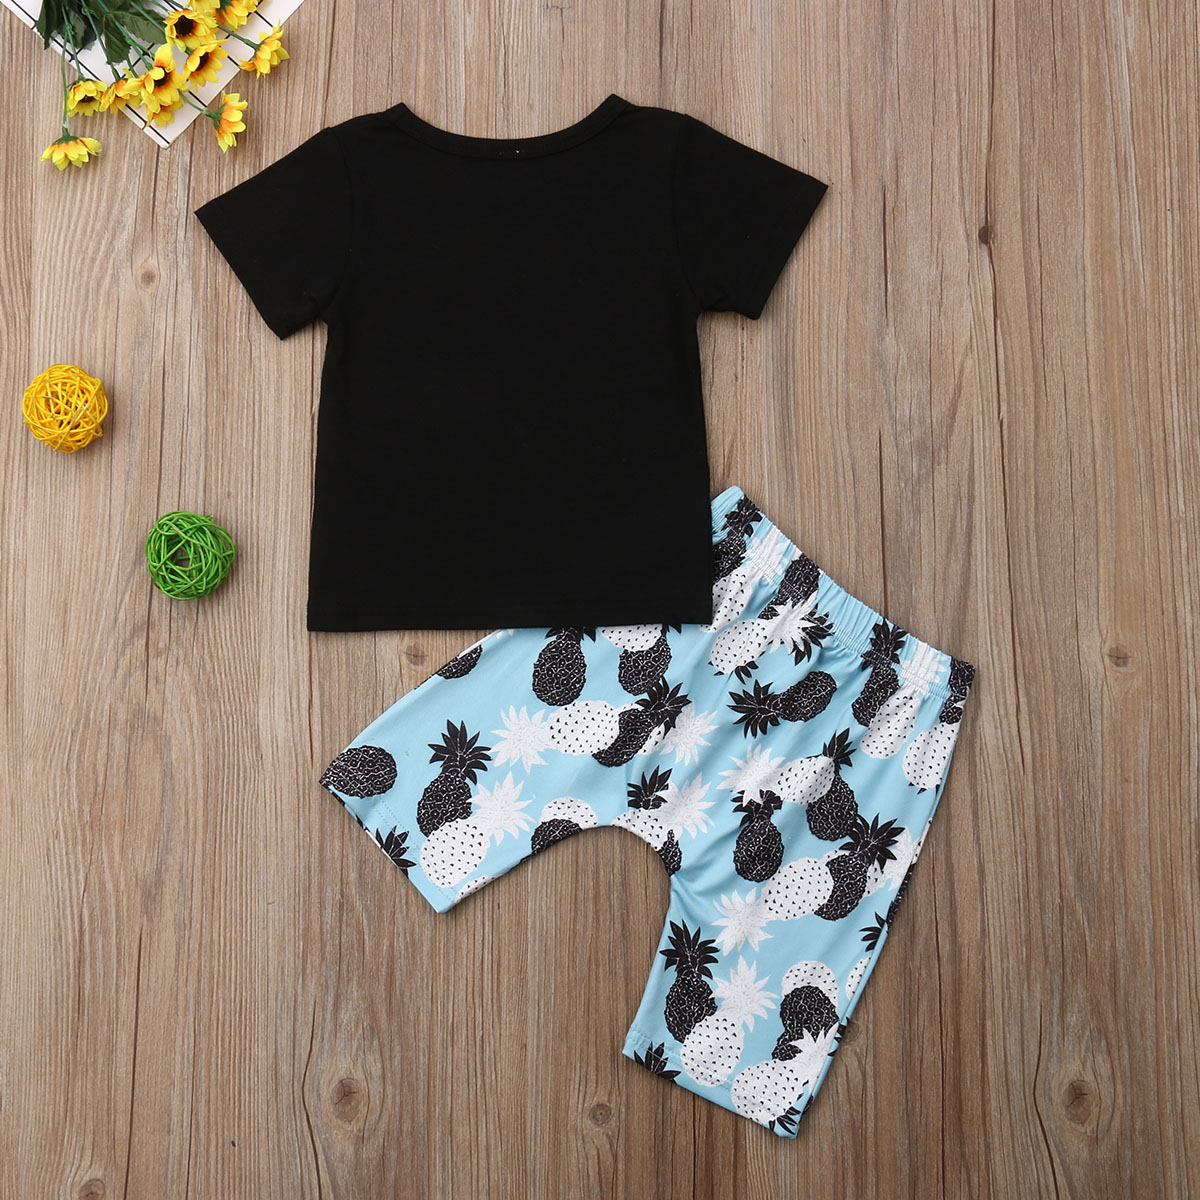 2pcs Toddler Infant Kids Baby Boys Summer Clothes T-shirt Tops+Pants Outfits Set